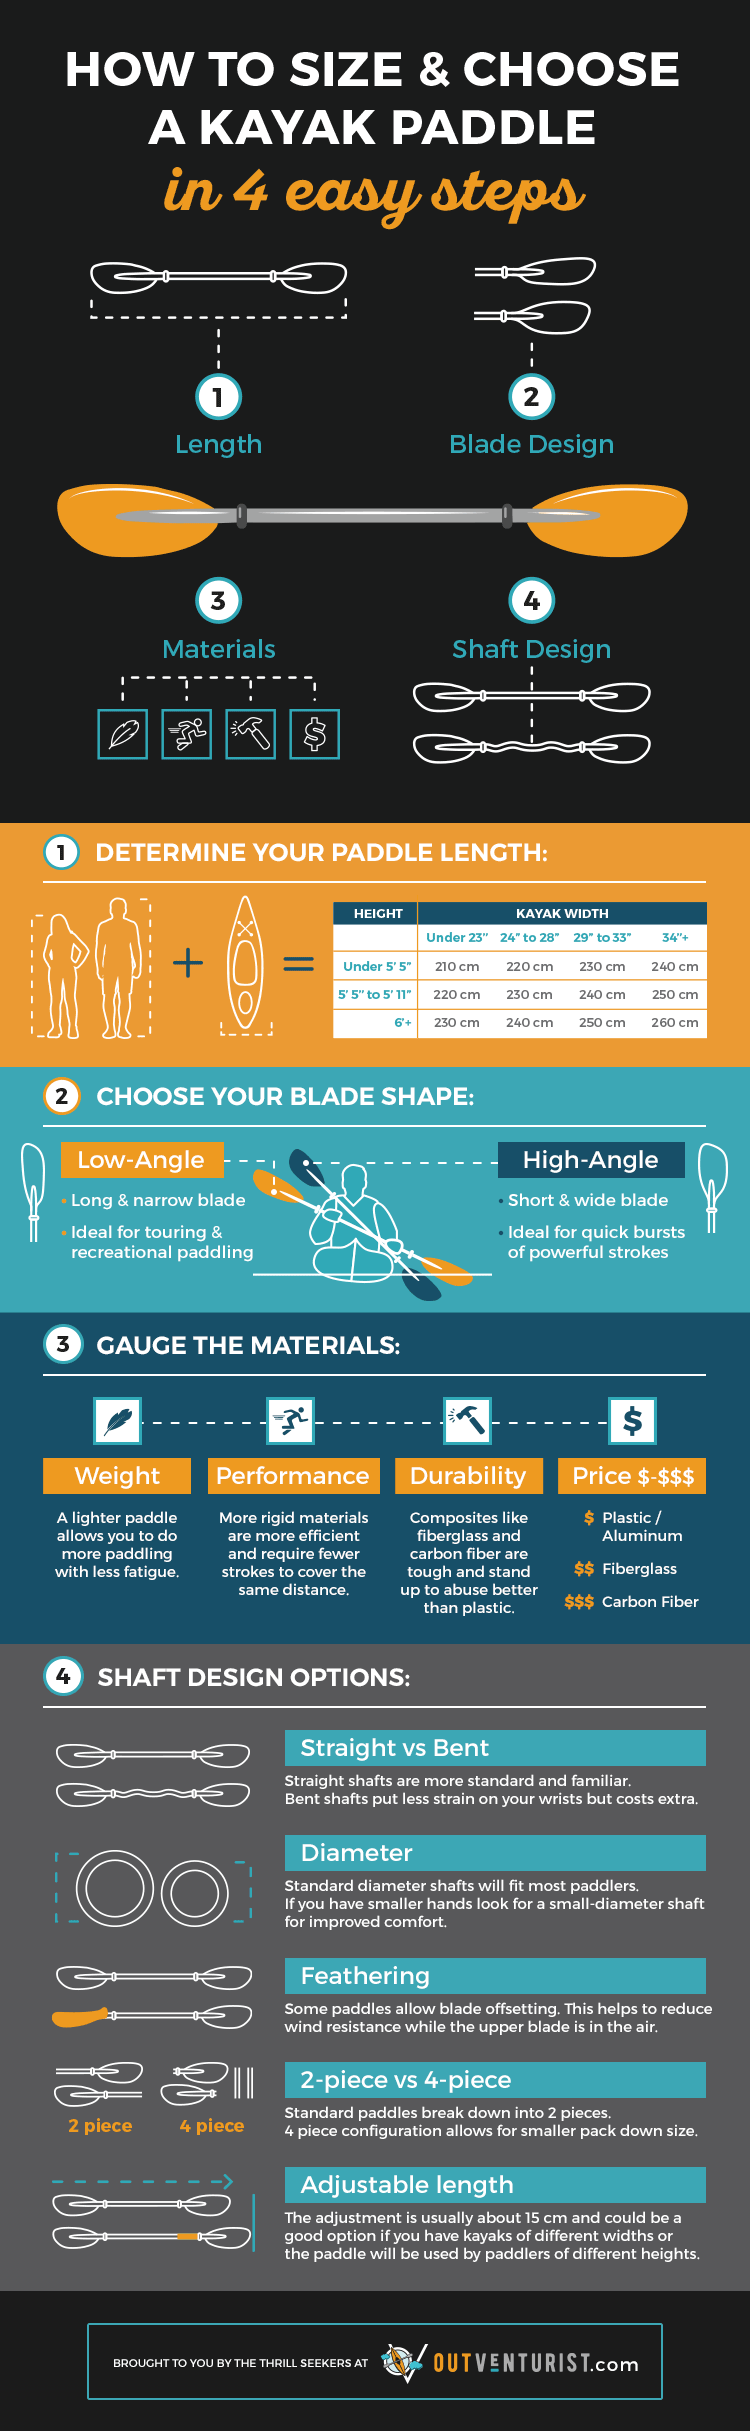 How to Size and Choose a Kayak Paddle